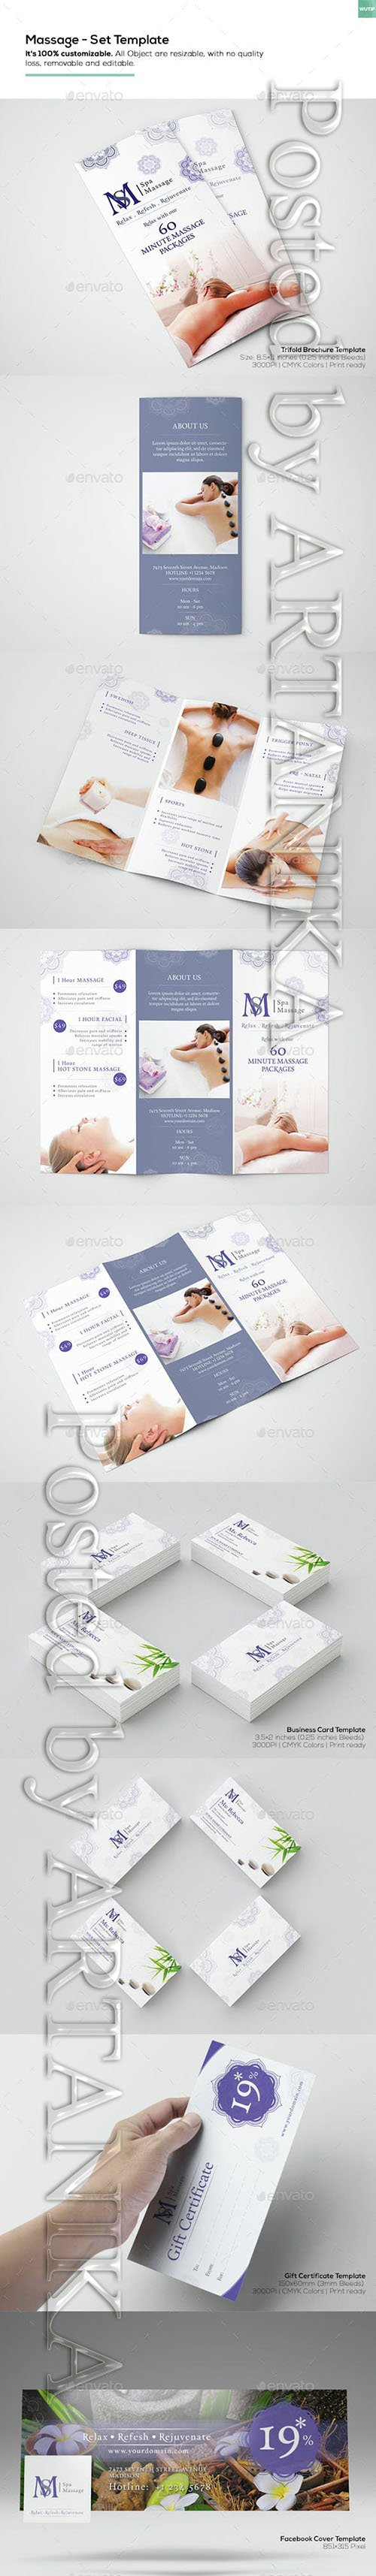 Graphicriver - Massage - Set Template 15252137